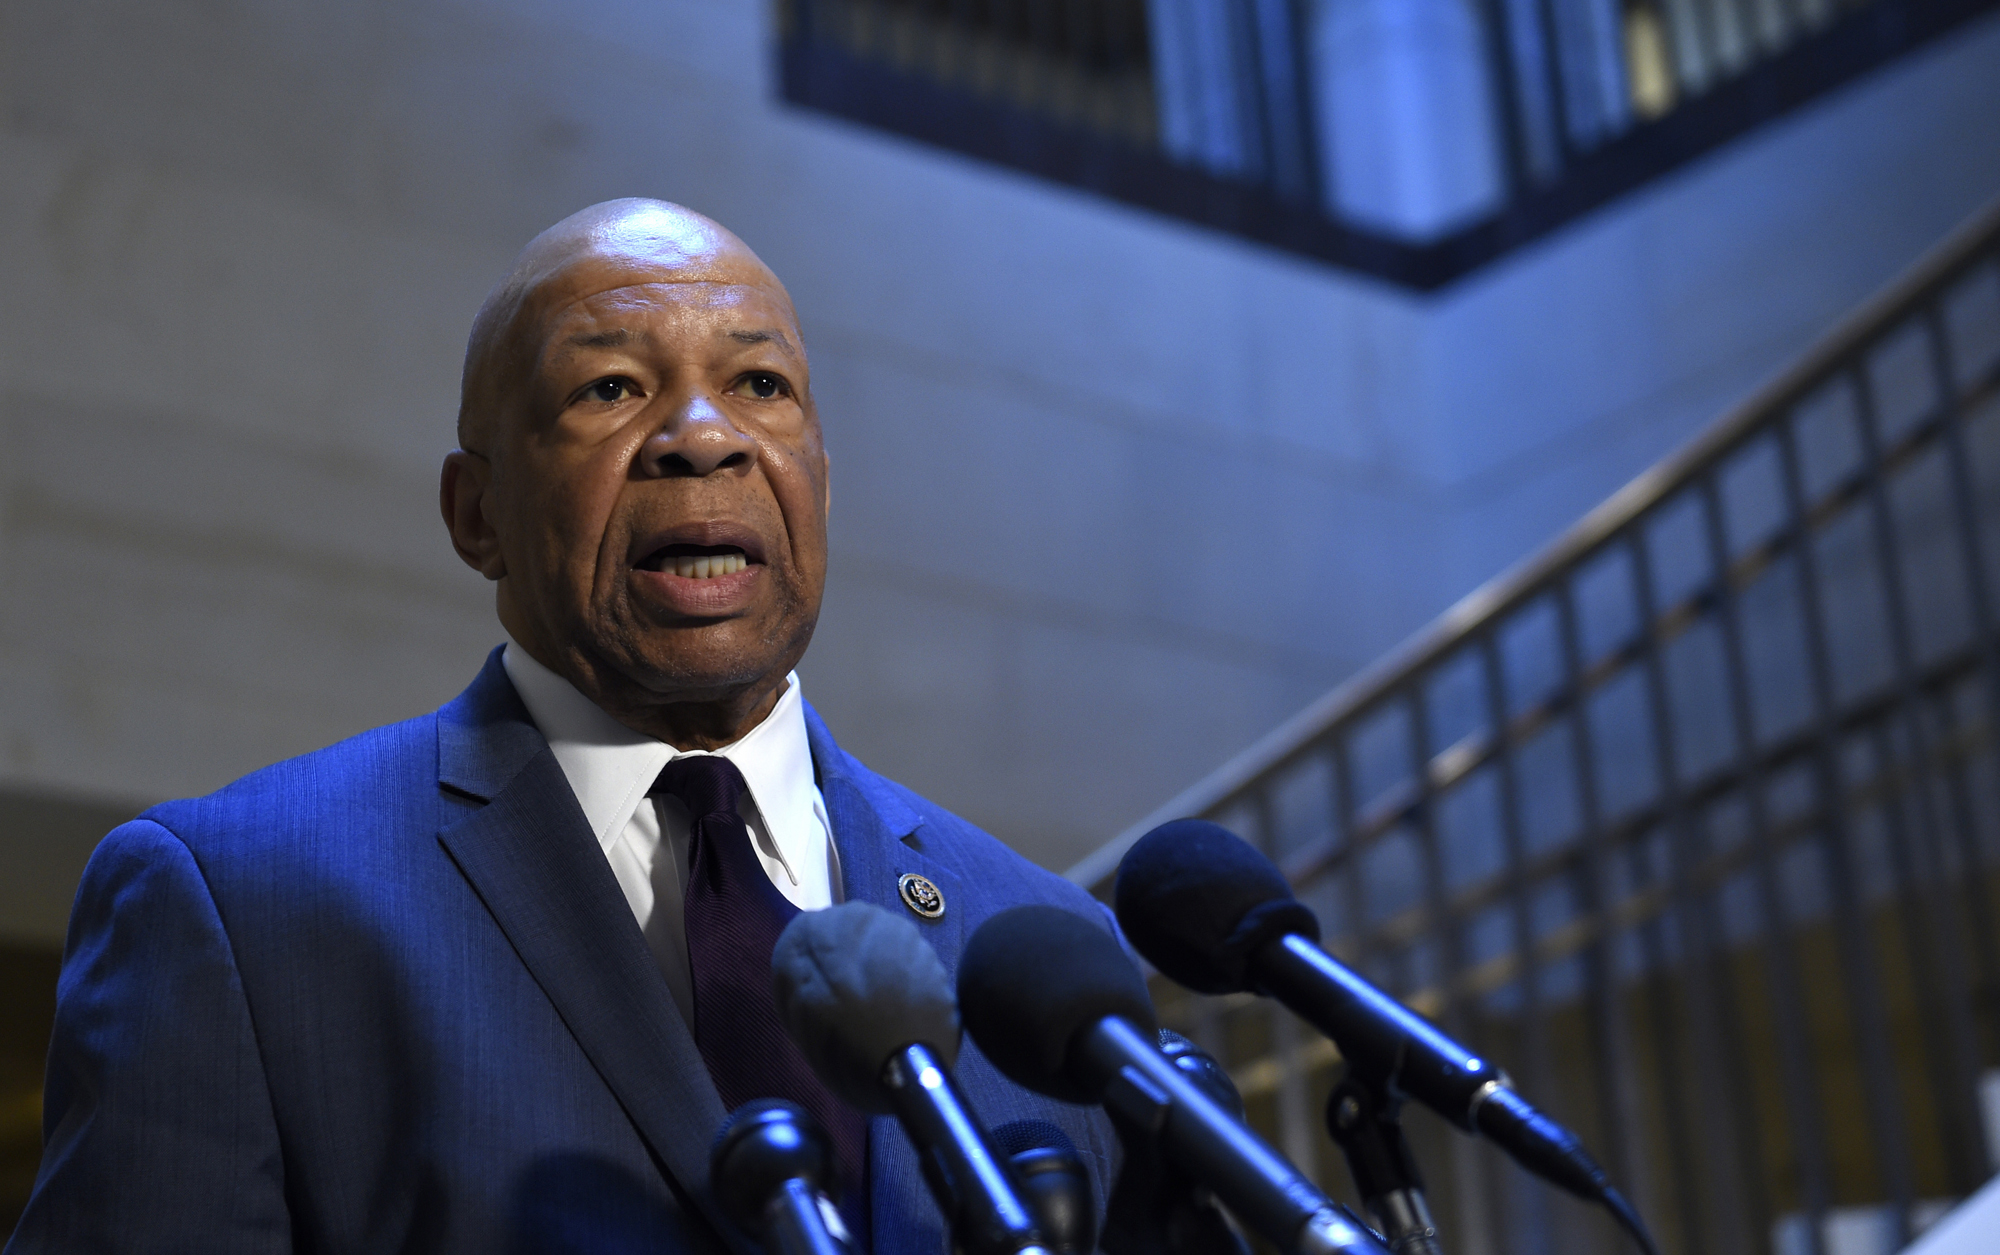 Rep. Elijah Cummings, D-Md., has called on Secretary of State Rex Tillerson to investigate allegations that a member of the Senior Executive Service has humiliated career employees and negatively impacted their work environment. (Susan Walsh/AP)